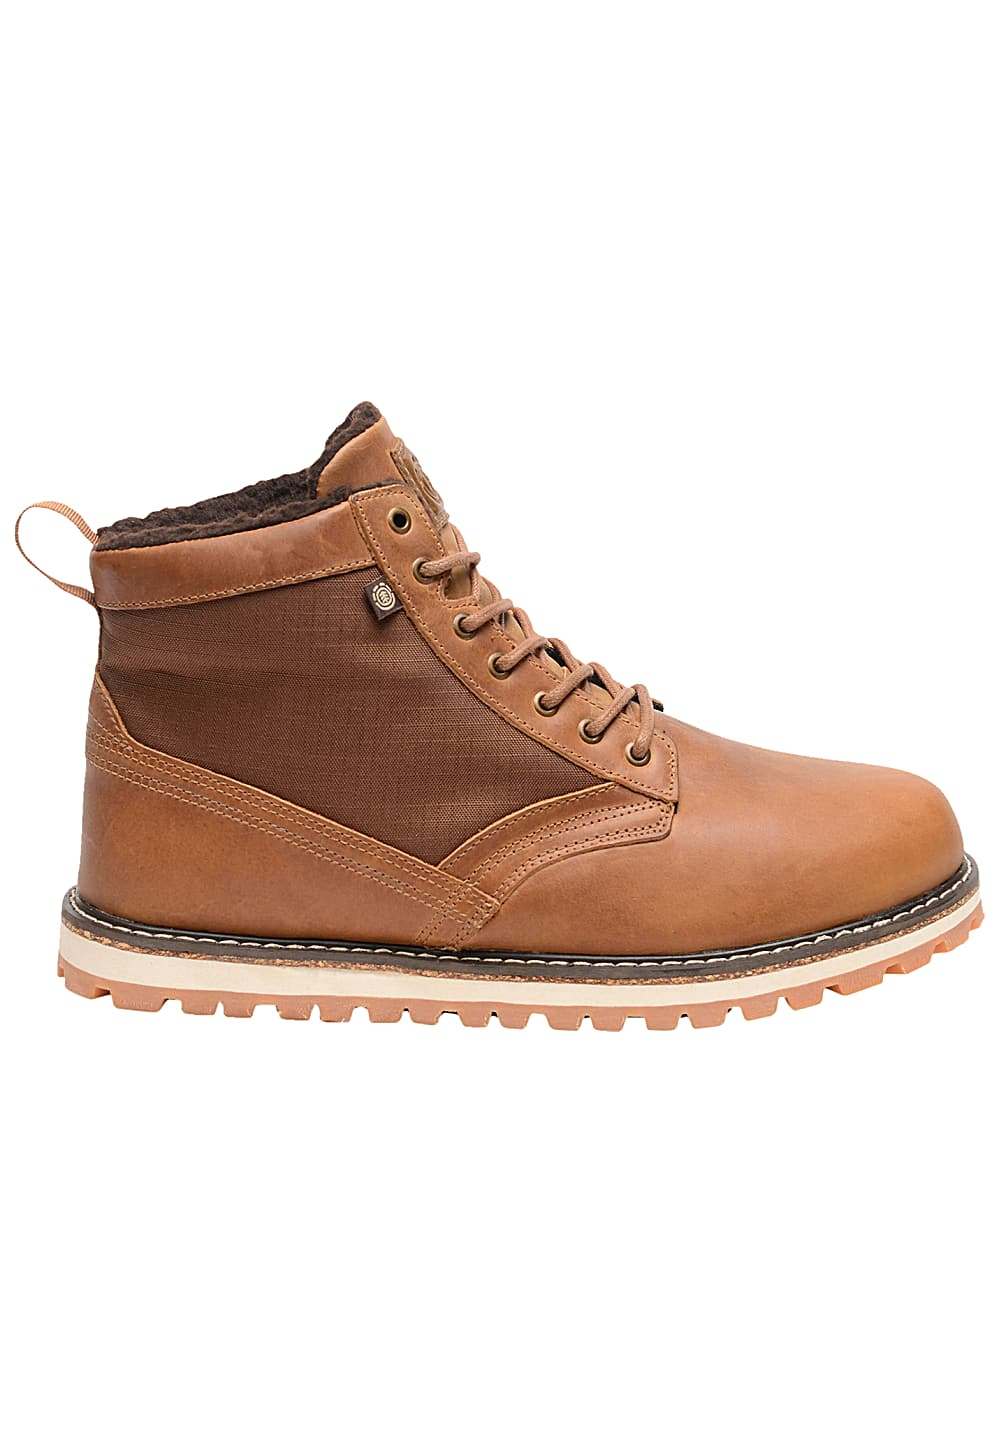 a969529cf3f Element Seton - Boots for Men - Brown